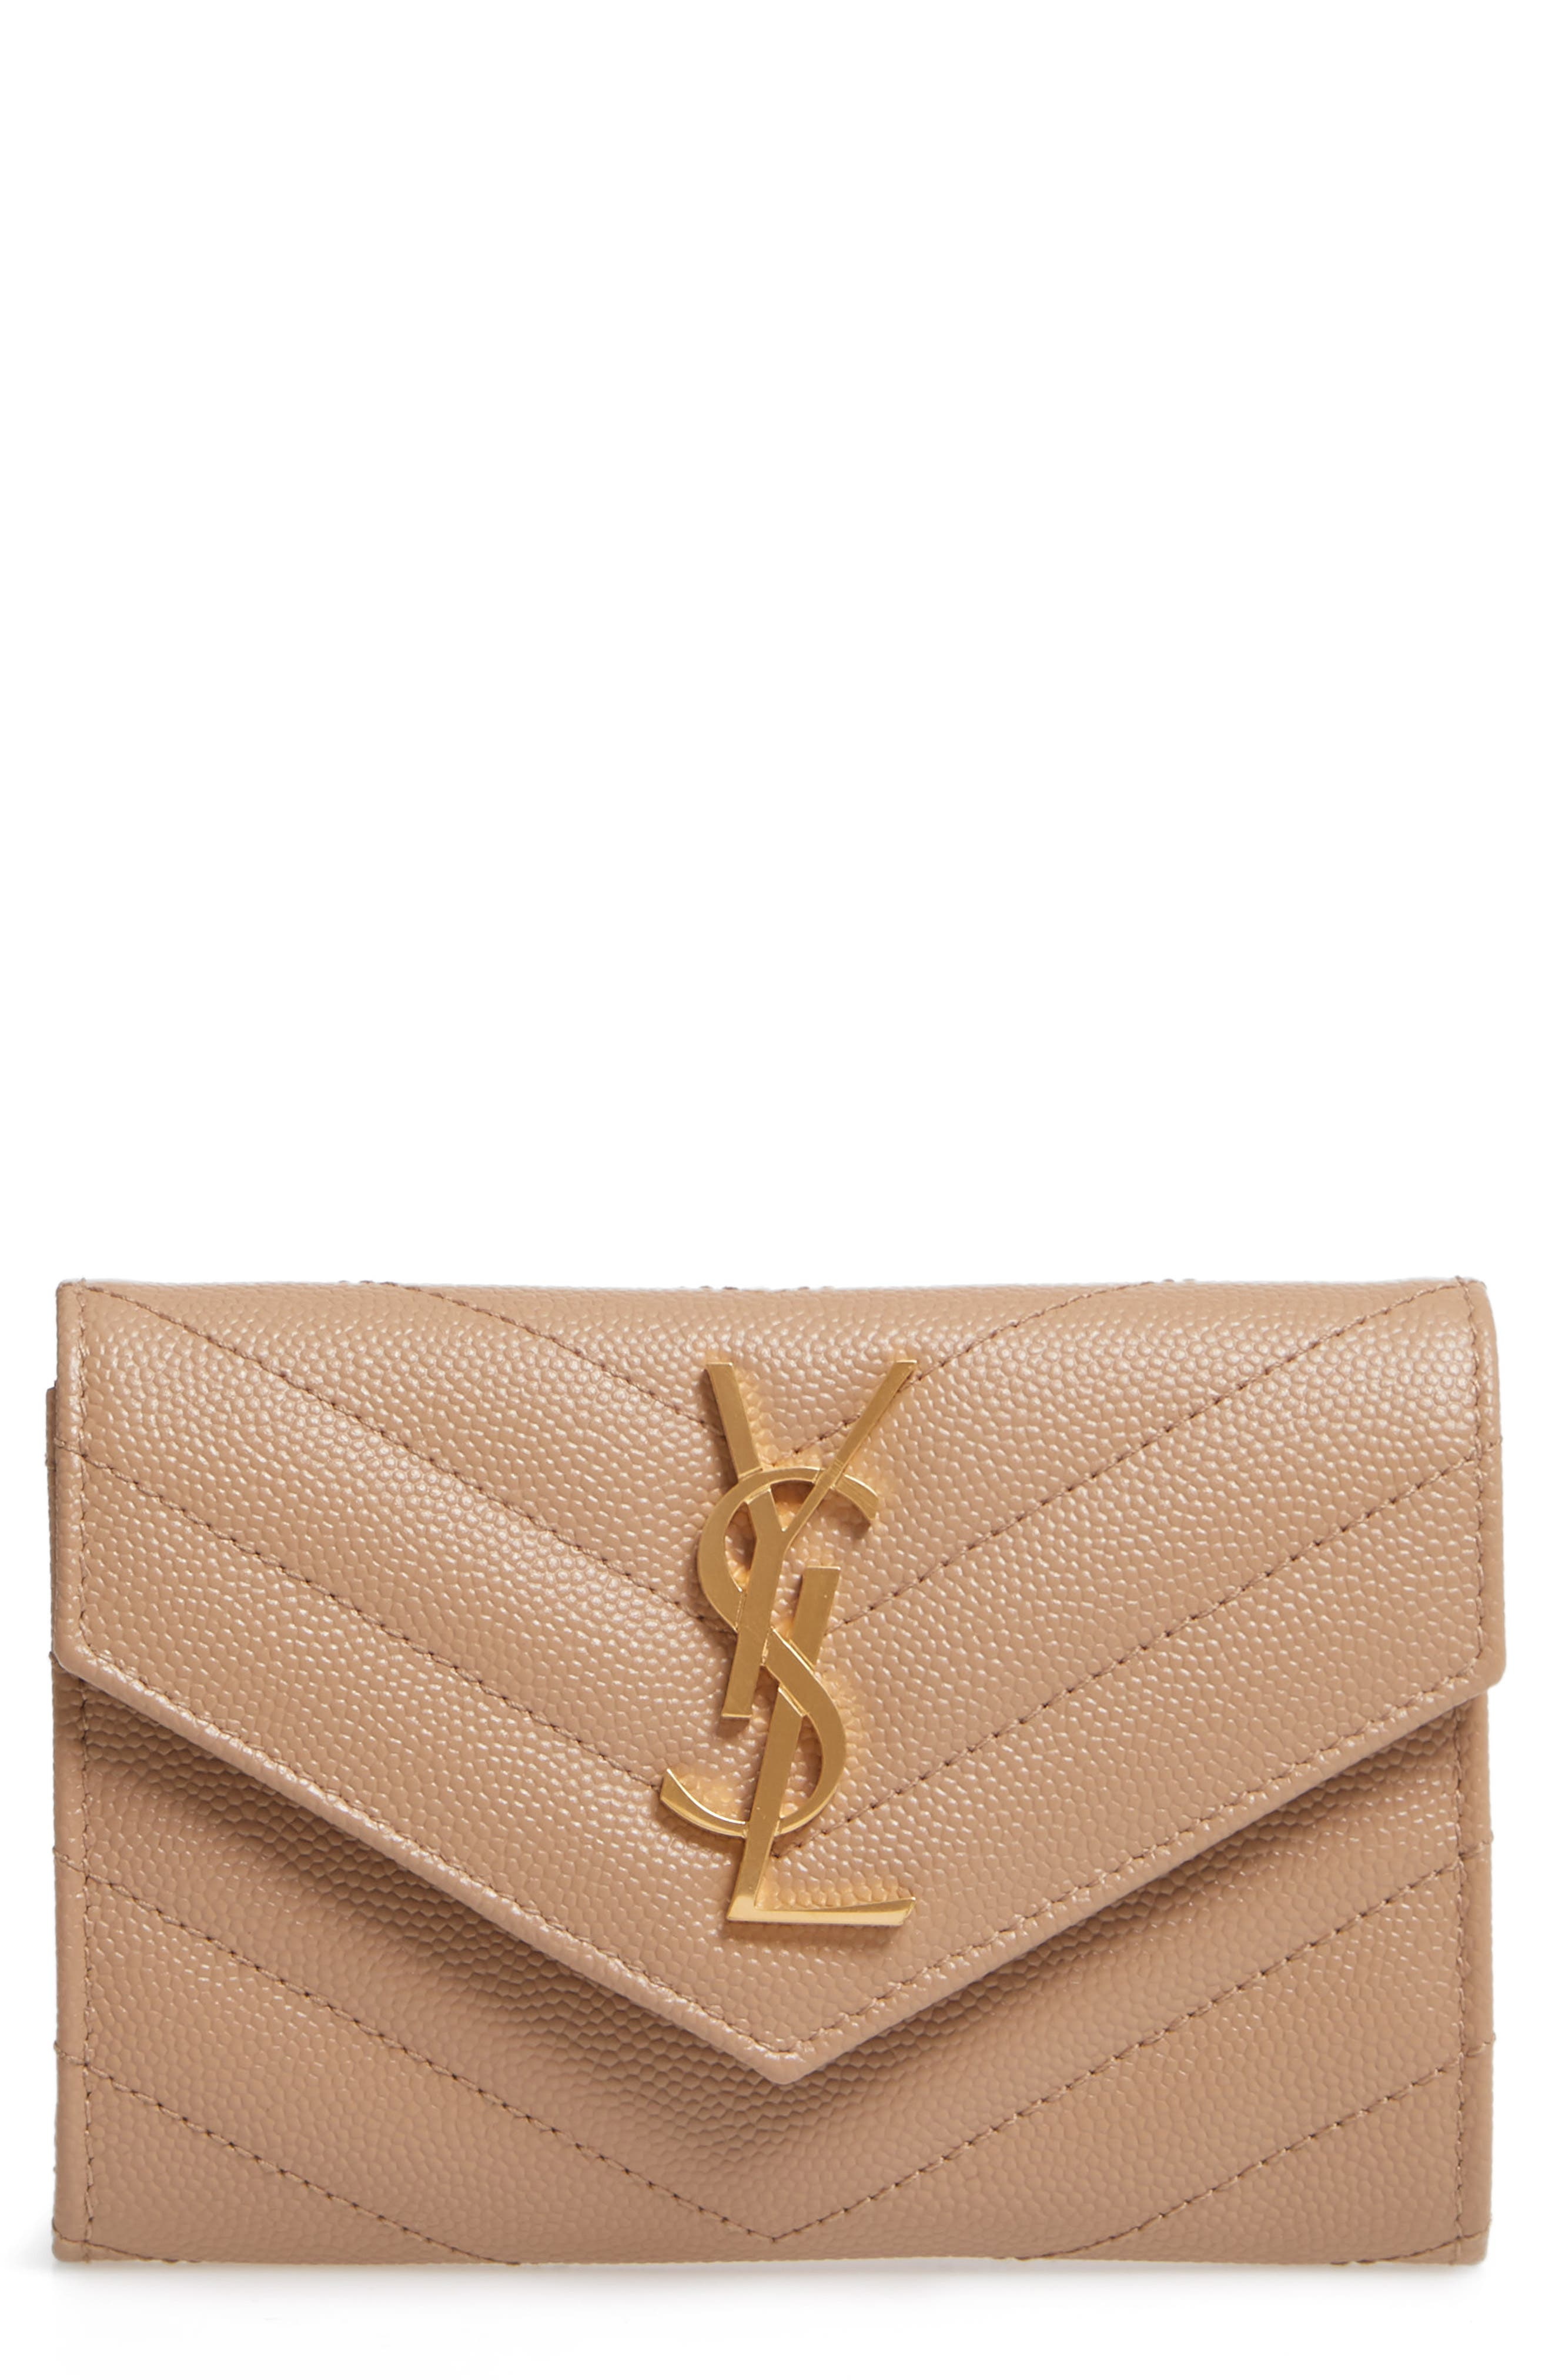 SAINT LAURENT 'Monogram' Quilted Leather French Wallet, Main, color, 253